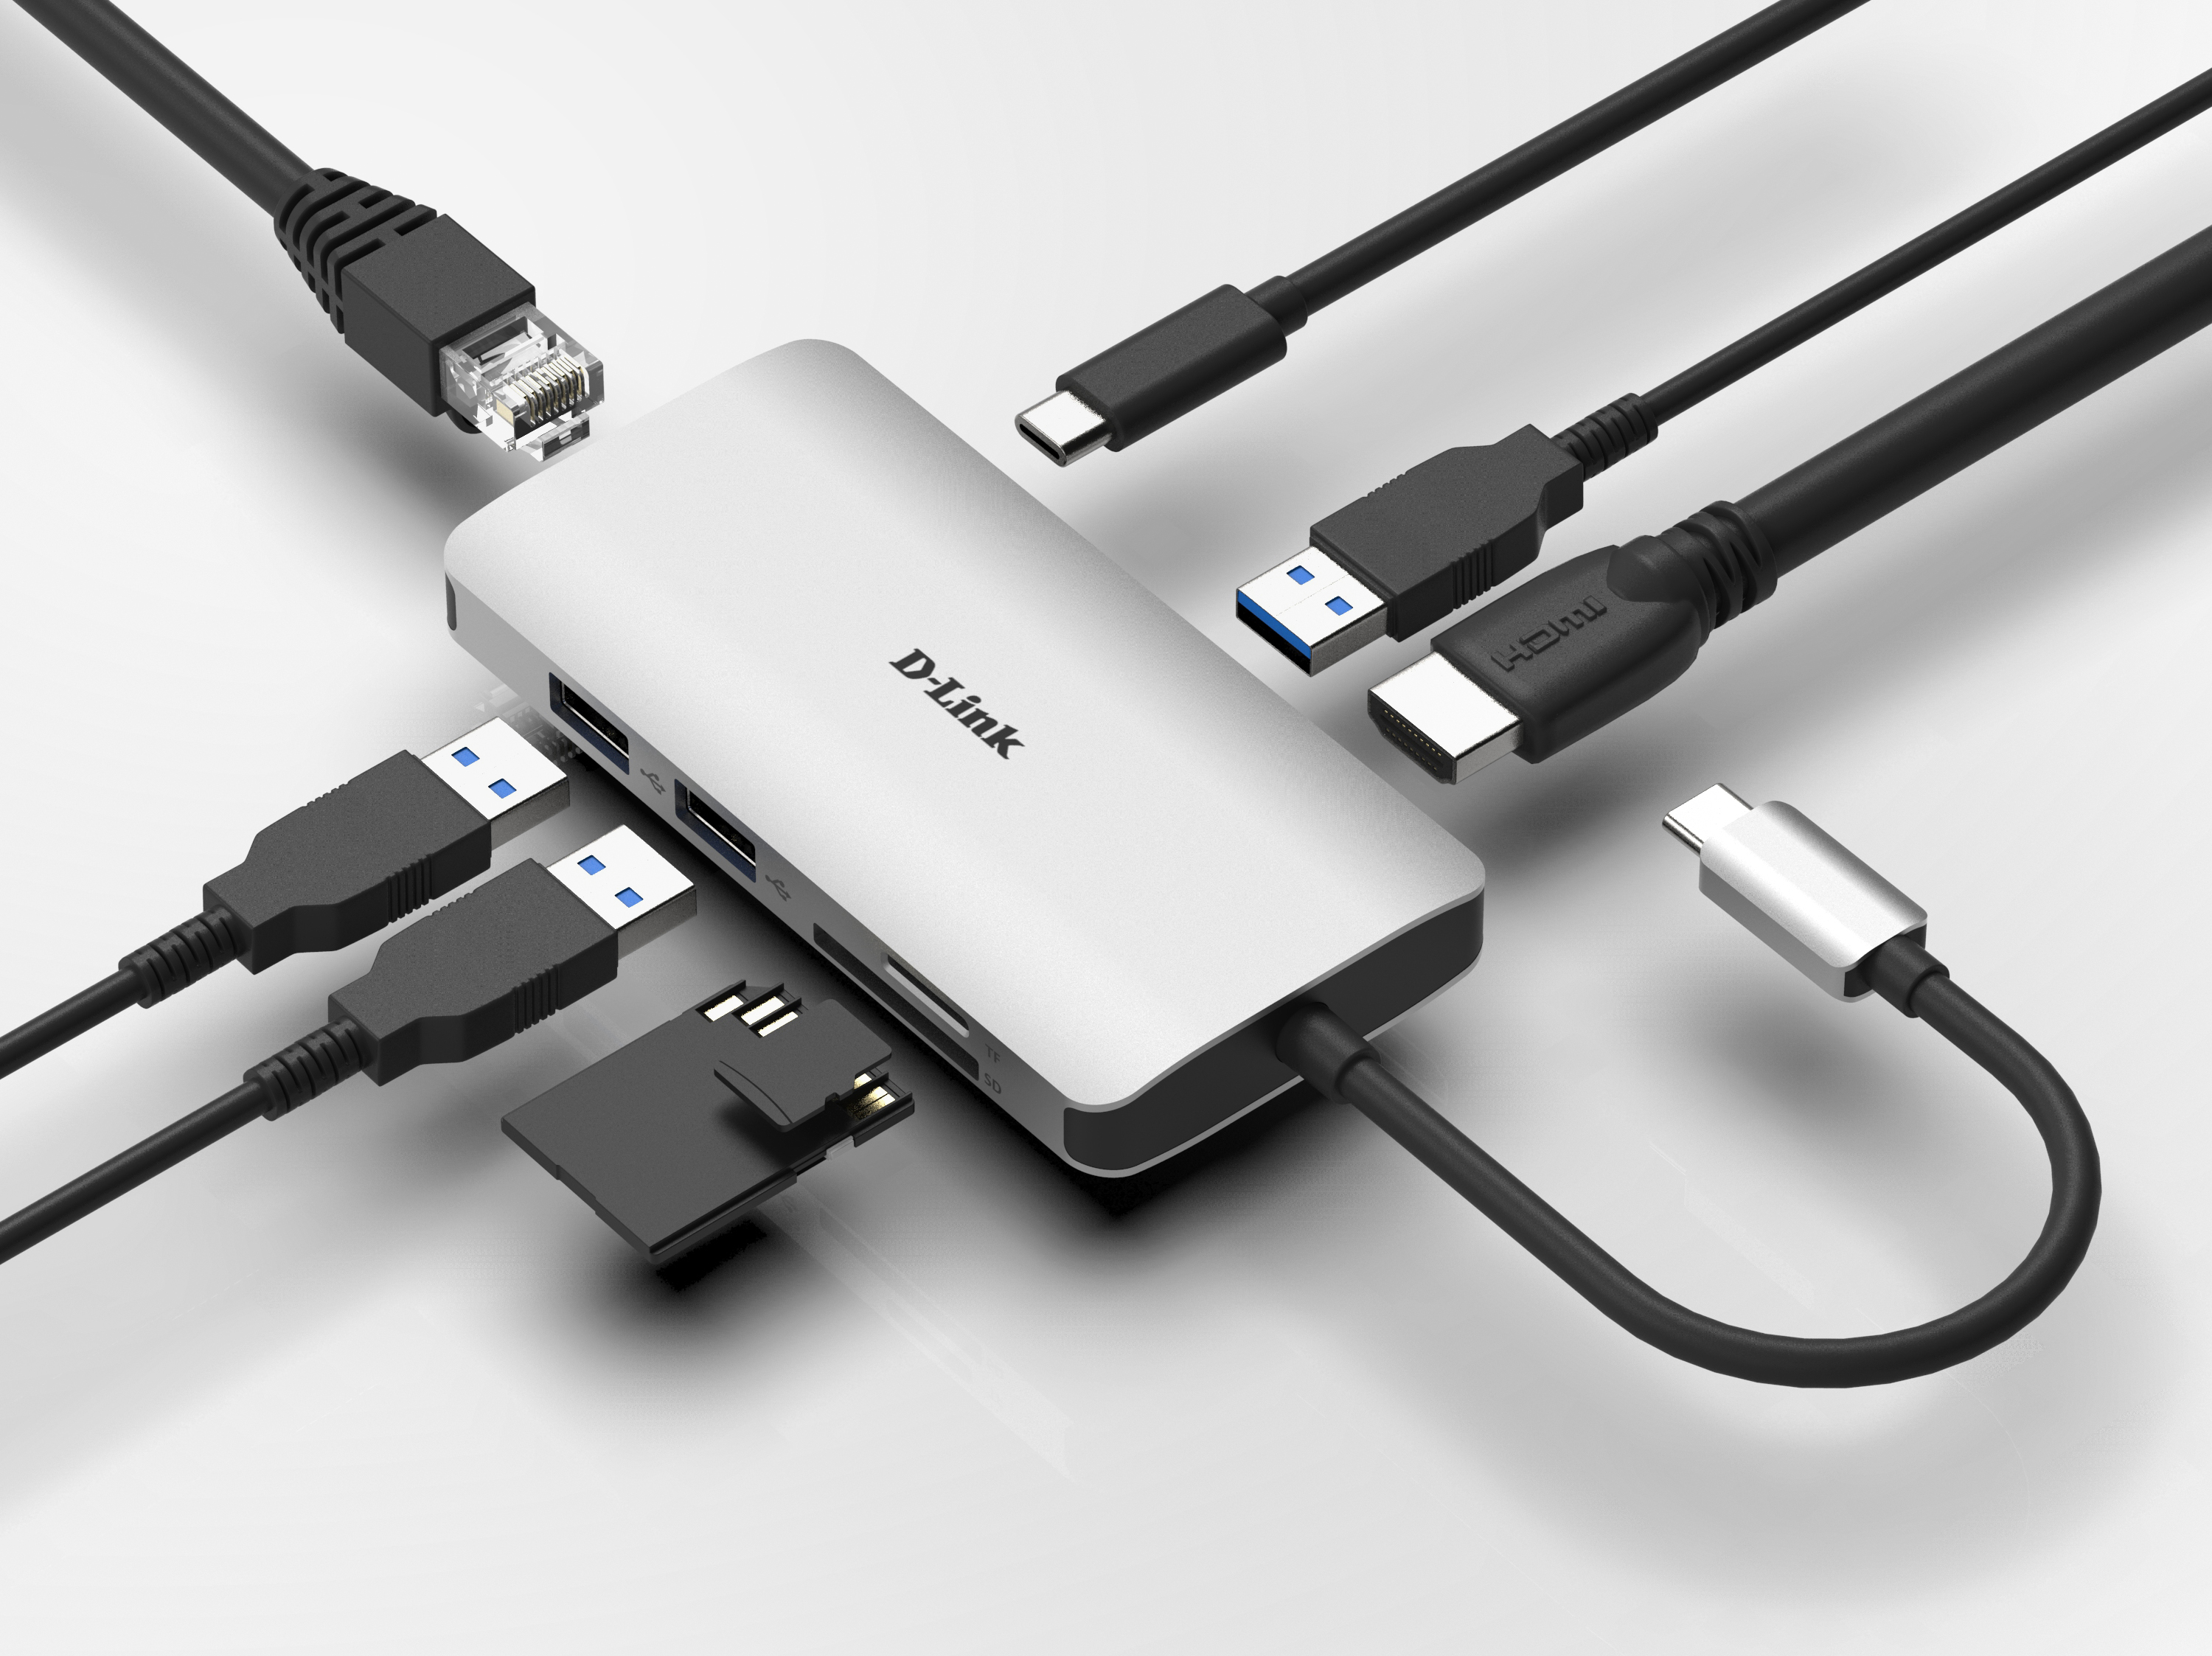 DUB-M810 8-in-1 USB-C Hub with HDMI/Ethernet/Card Reader/Power Delivery - example connections